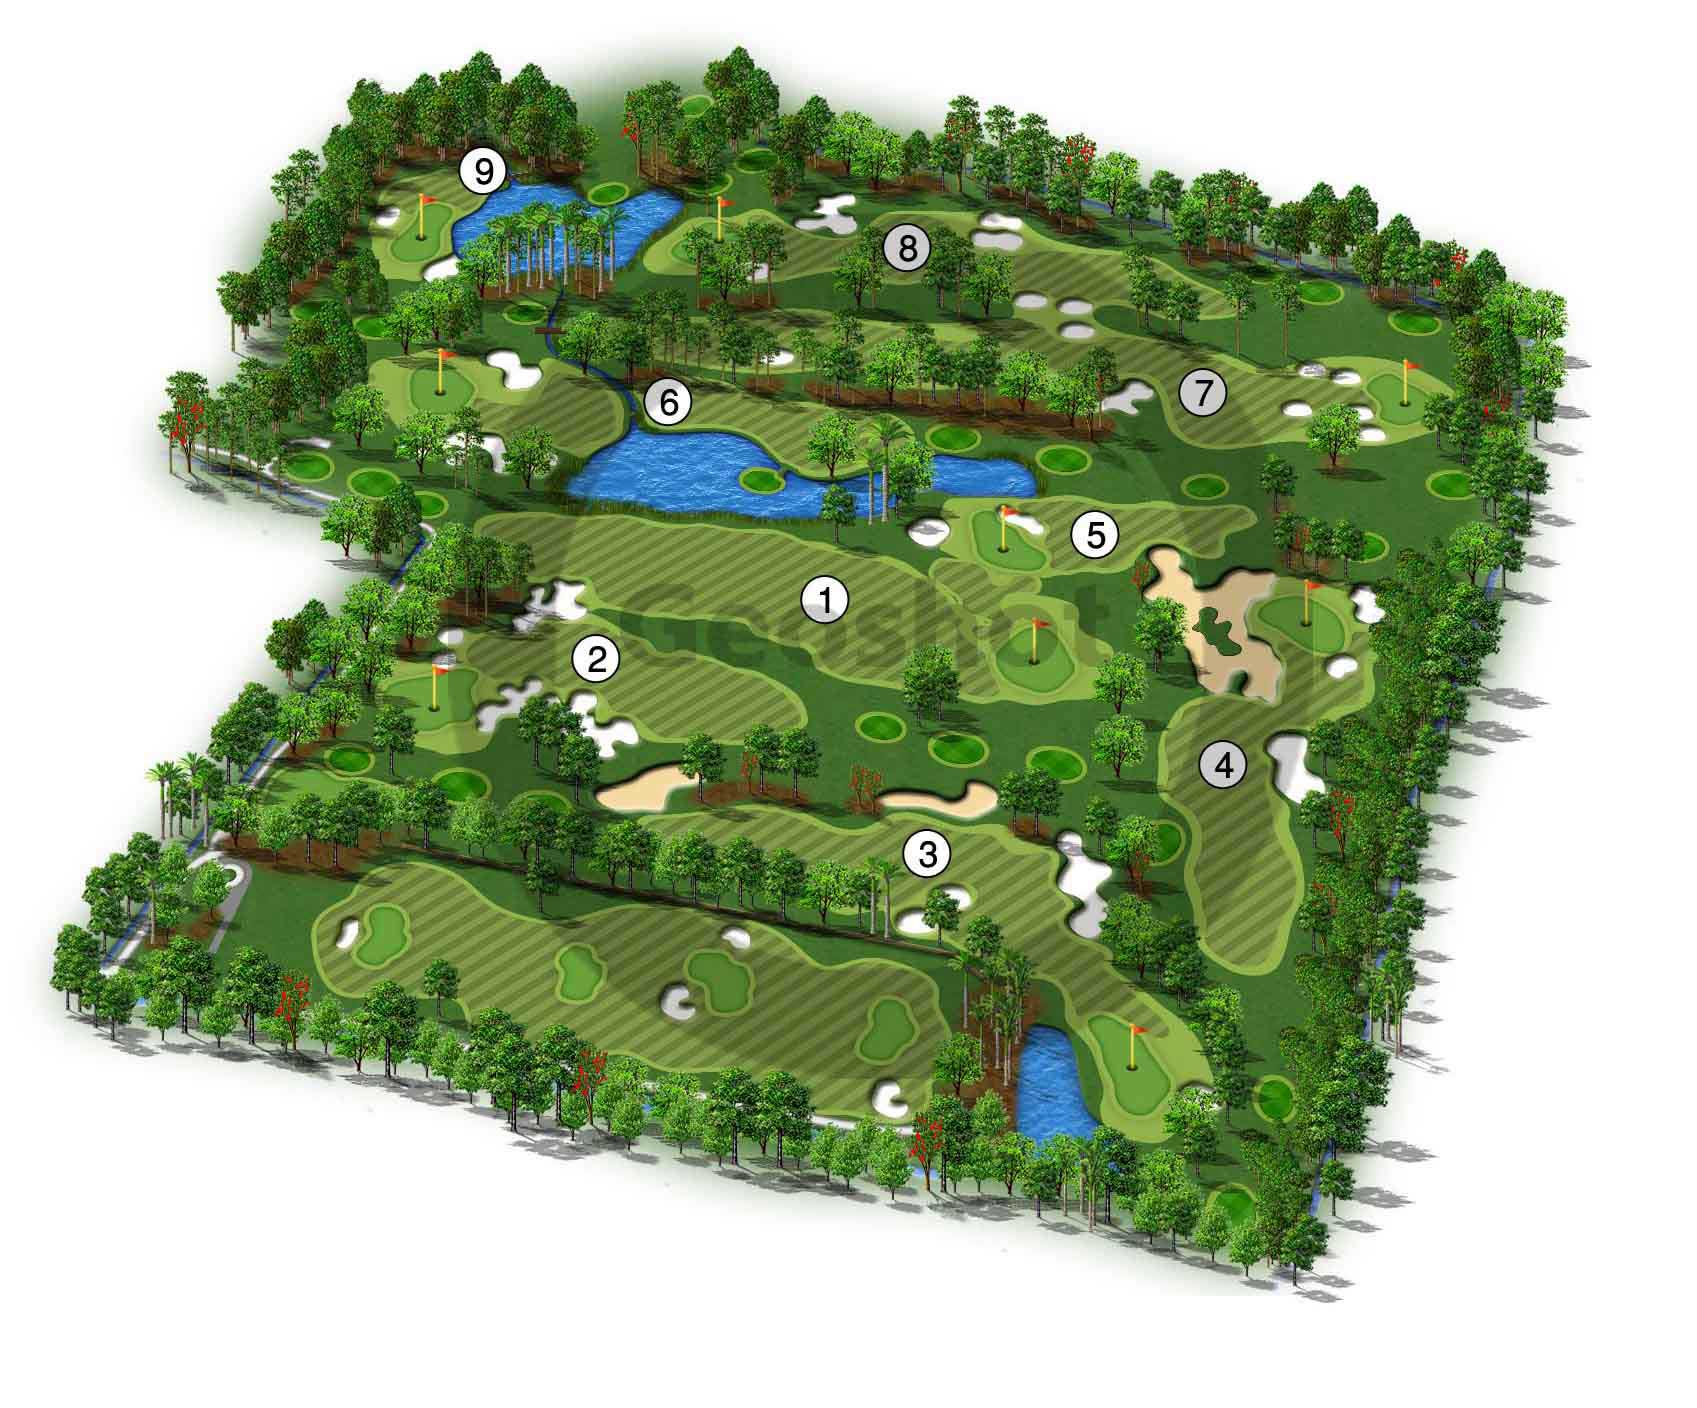 Golf Course Maps | Golf Course Mapping | Yardage Books on golf packages, modern art map, volleyball map, golf holidays, us road map, civilization world map, golf tours, golf real estate, football soccer map,